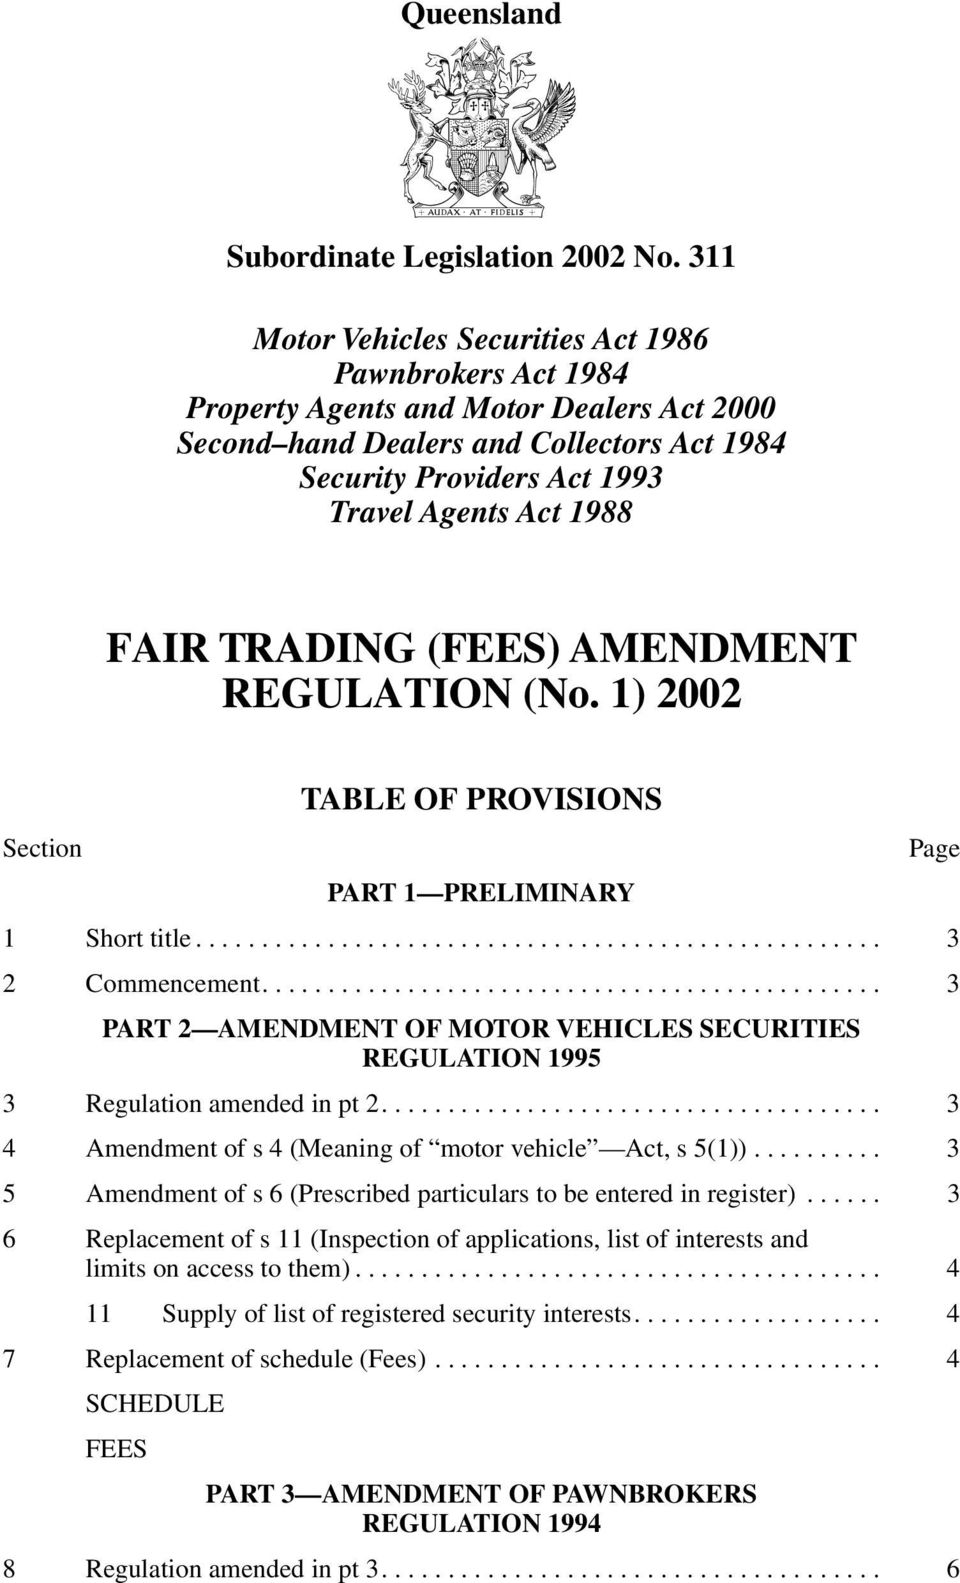 FAIR TRADING (FEES) AMENDMENT REGULATION (No. 1) TABLE OF PROVISIONS Section Page PART 1 PRELIMINARY 1 Short title.................................................... 3 2 Commencement.